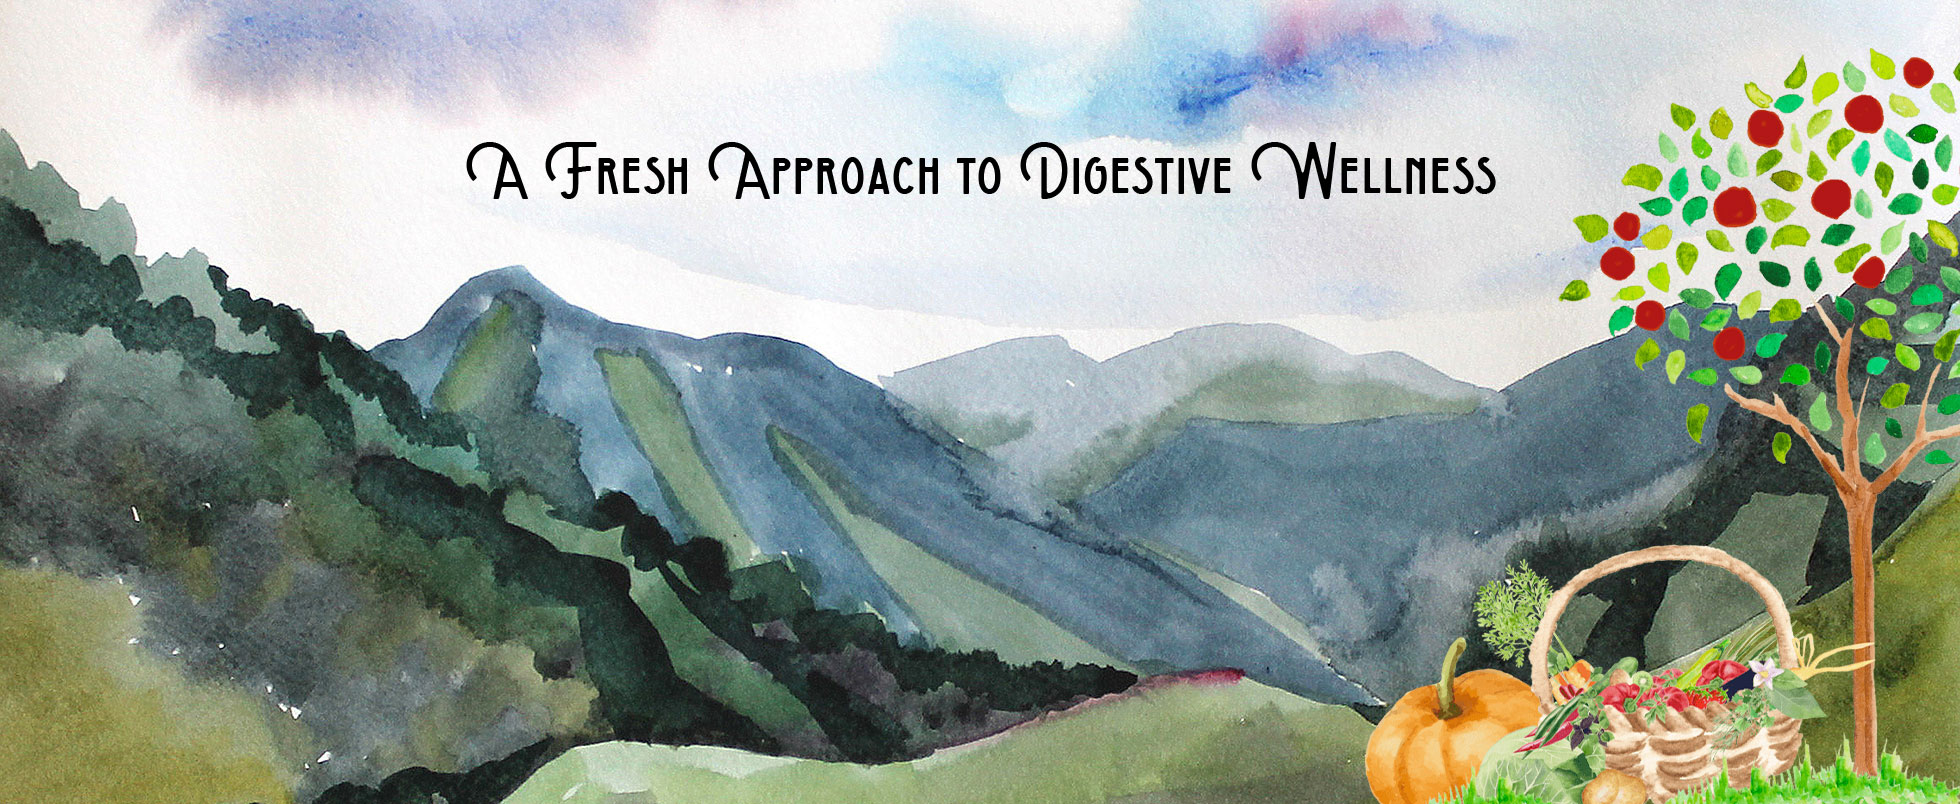 A fresh approach to digestive wellness